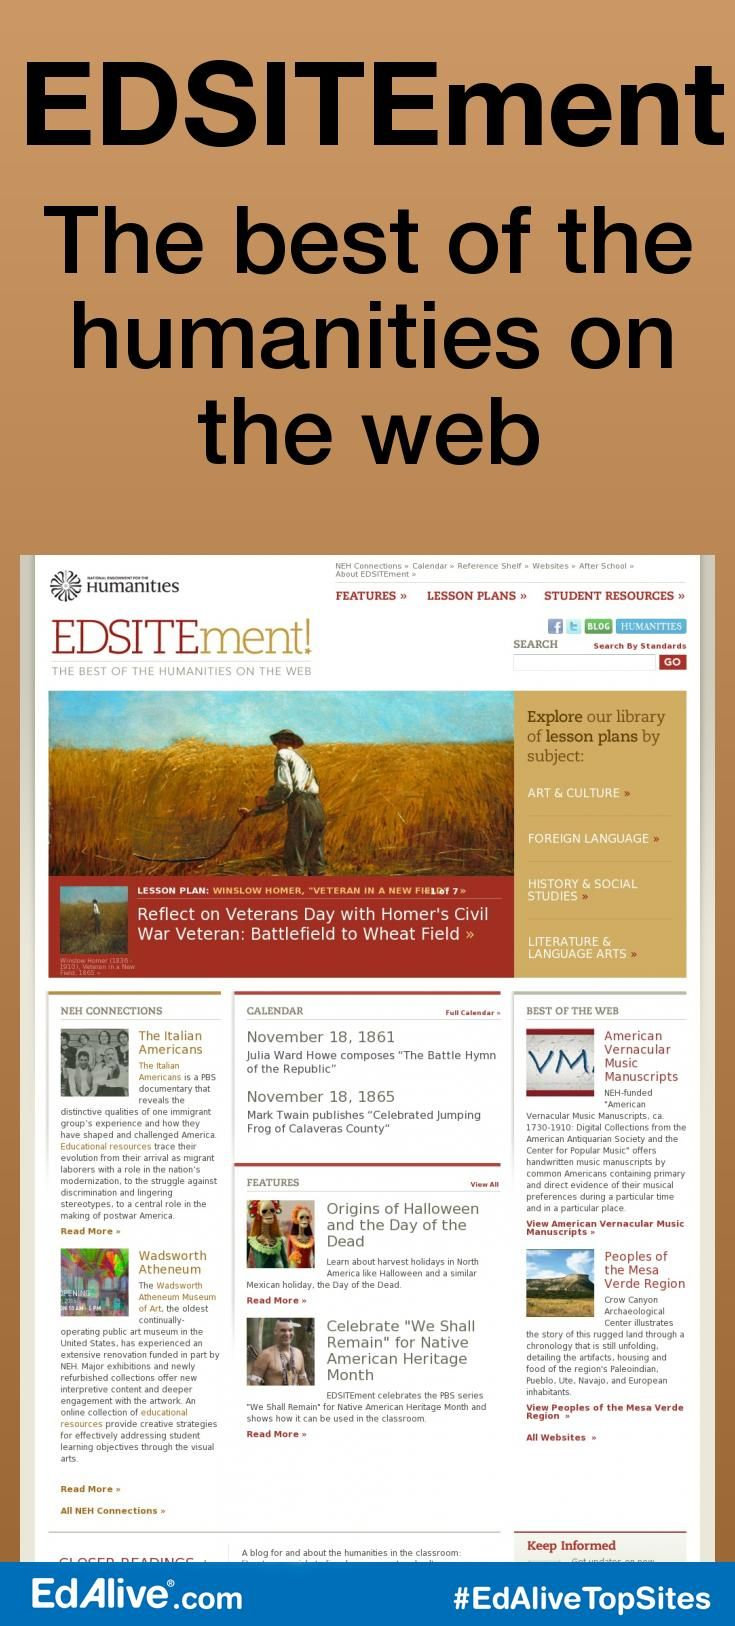 EDSITEment | The best of the humanities on the web | Combines history with language arts, foreign language, art, and music to give students the total humanities experience through high-quality lesson plans that promote critical thinking. #SocialStudies #EdAliveTopSites